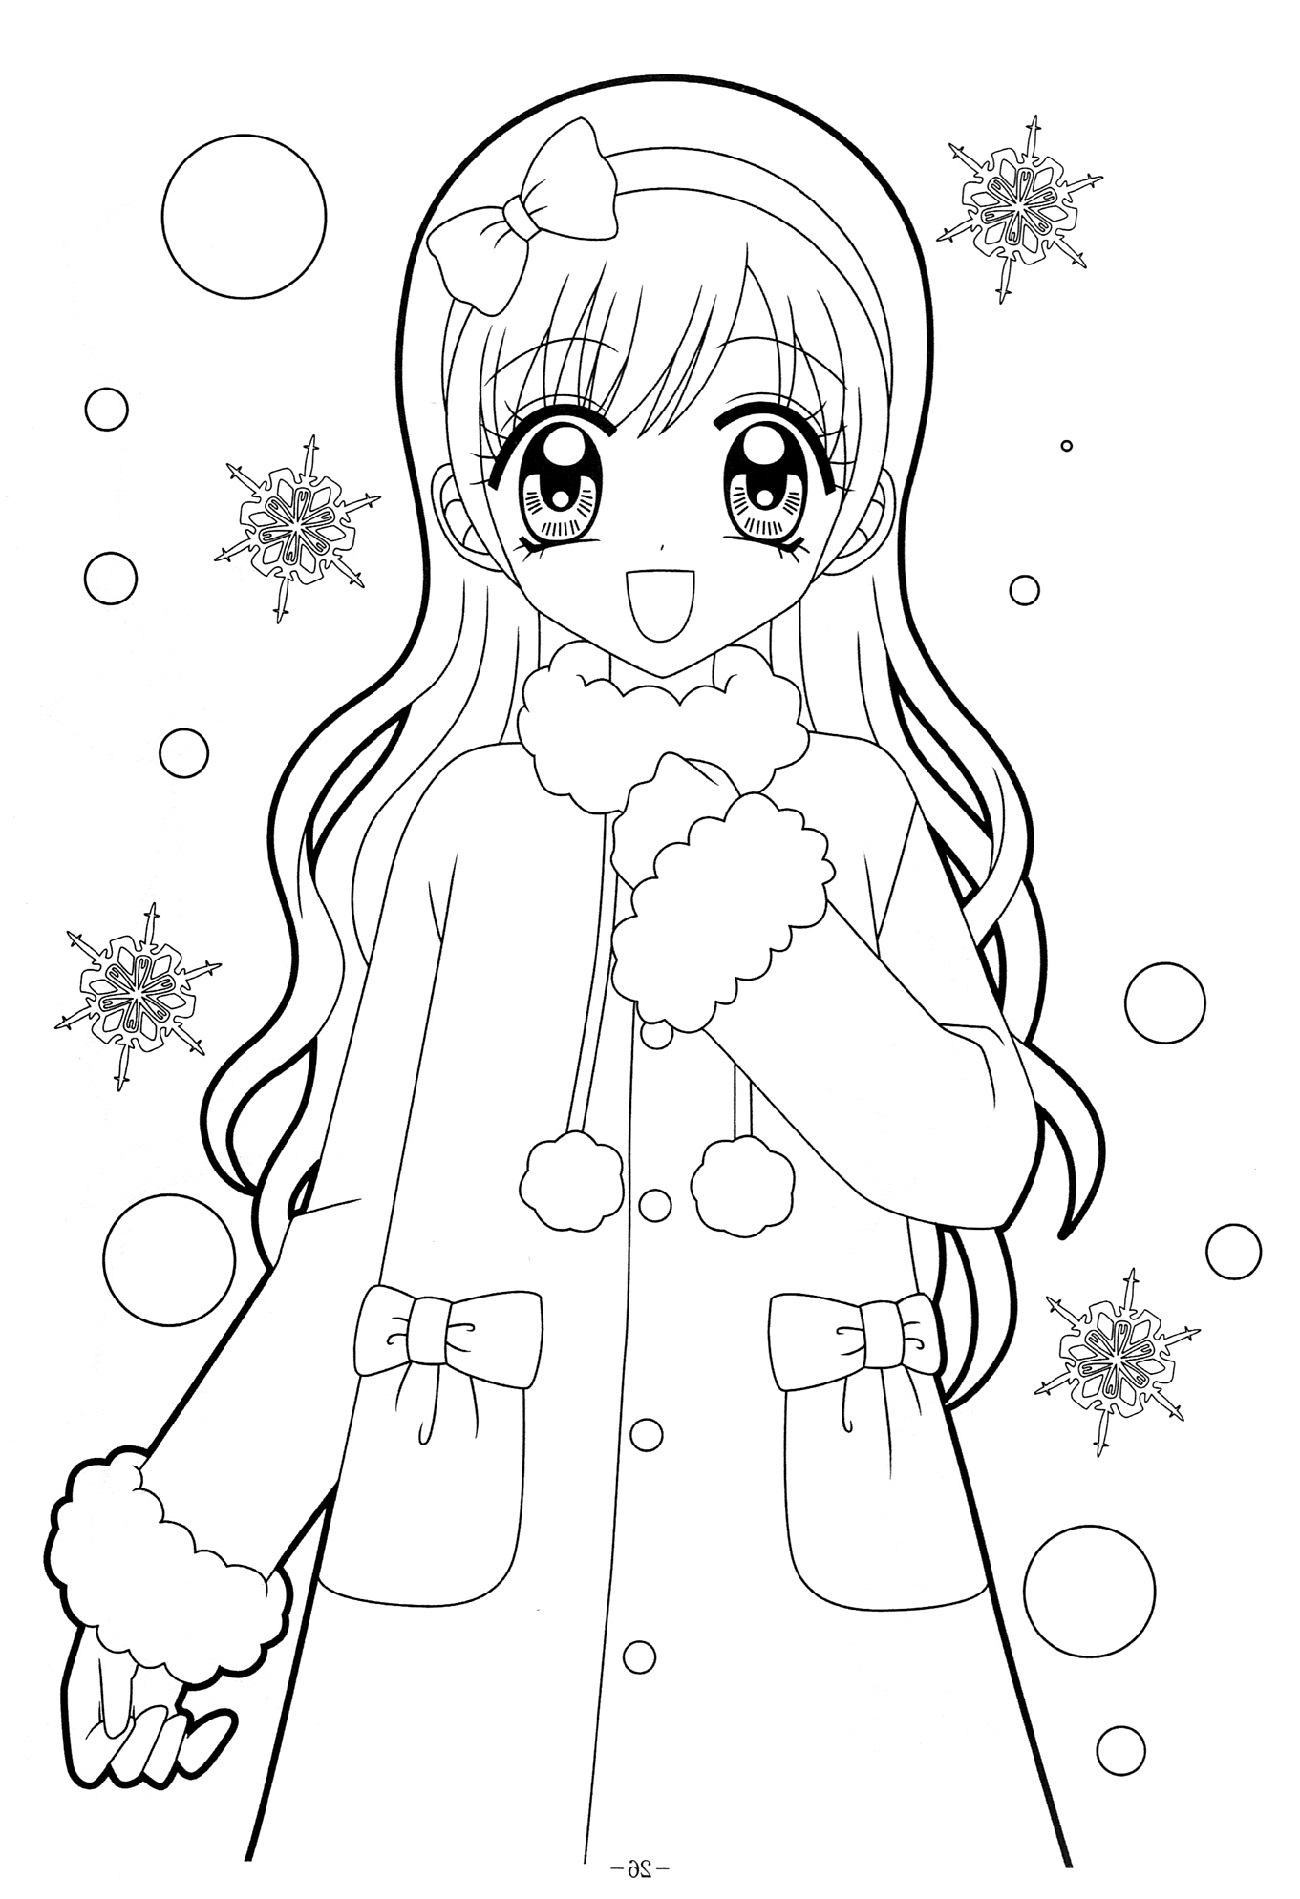 anime kawaii girl coloring pages 8 anime girl coloring pages pdf jpg ai illustrator girl coloring kawaii pages anime